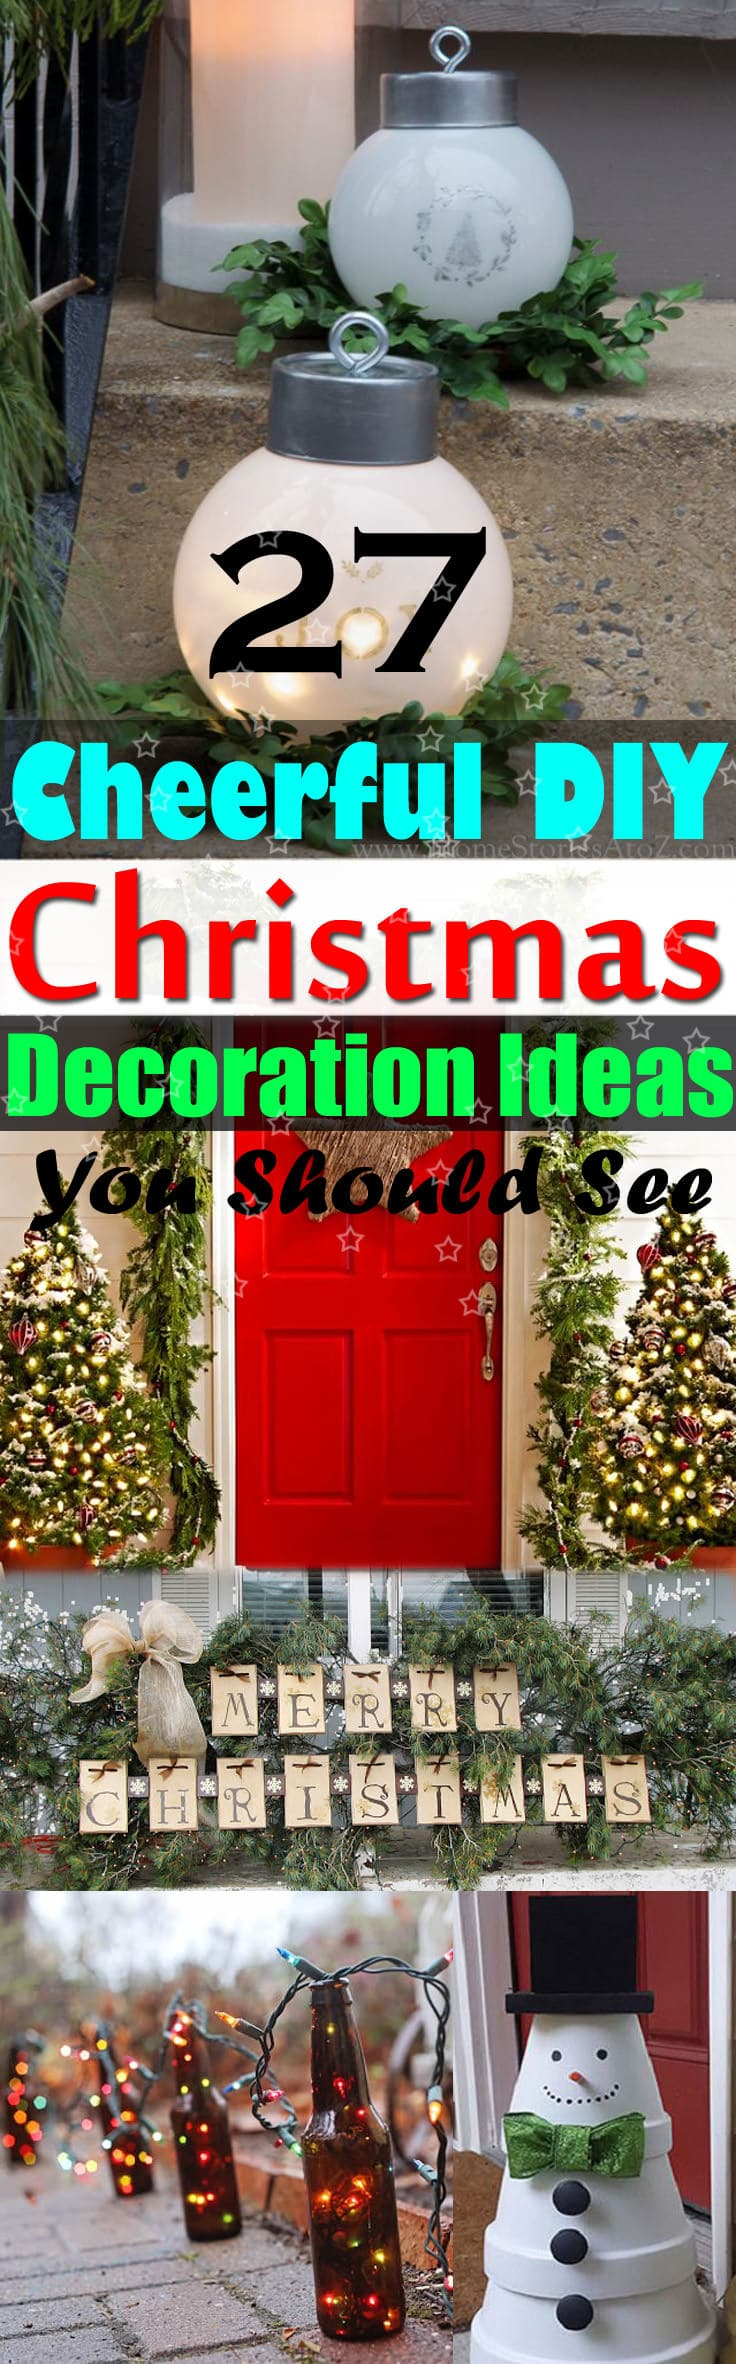 27 cheerful diy christmas decoration ideas you should look balcony pin it take a look at these 27 diy christmas decoration solutioingenieria Choice Image